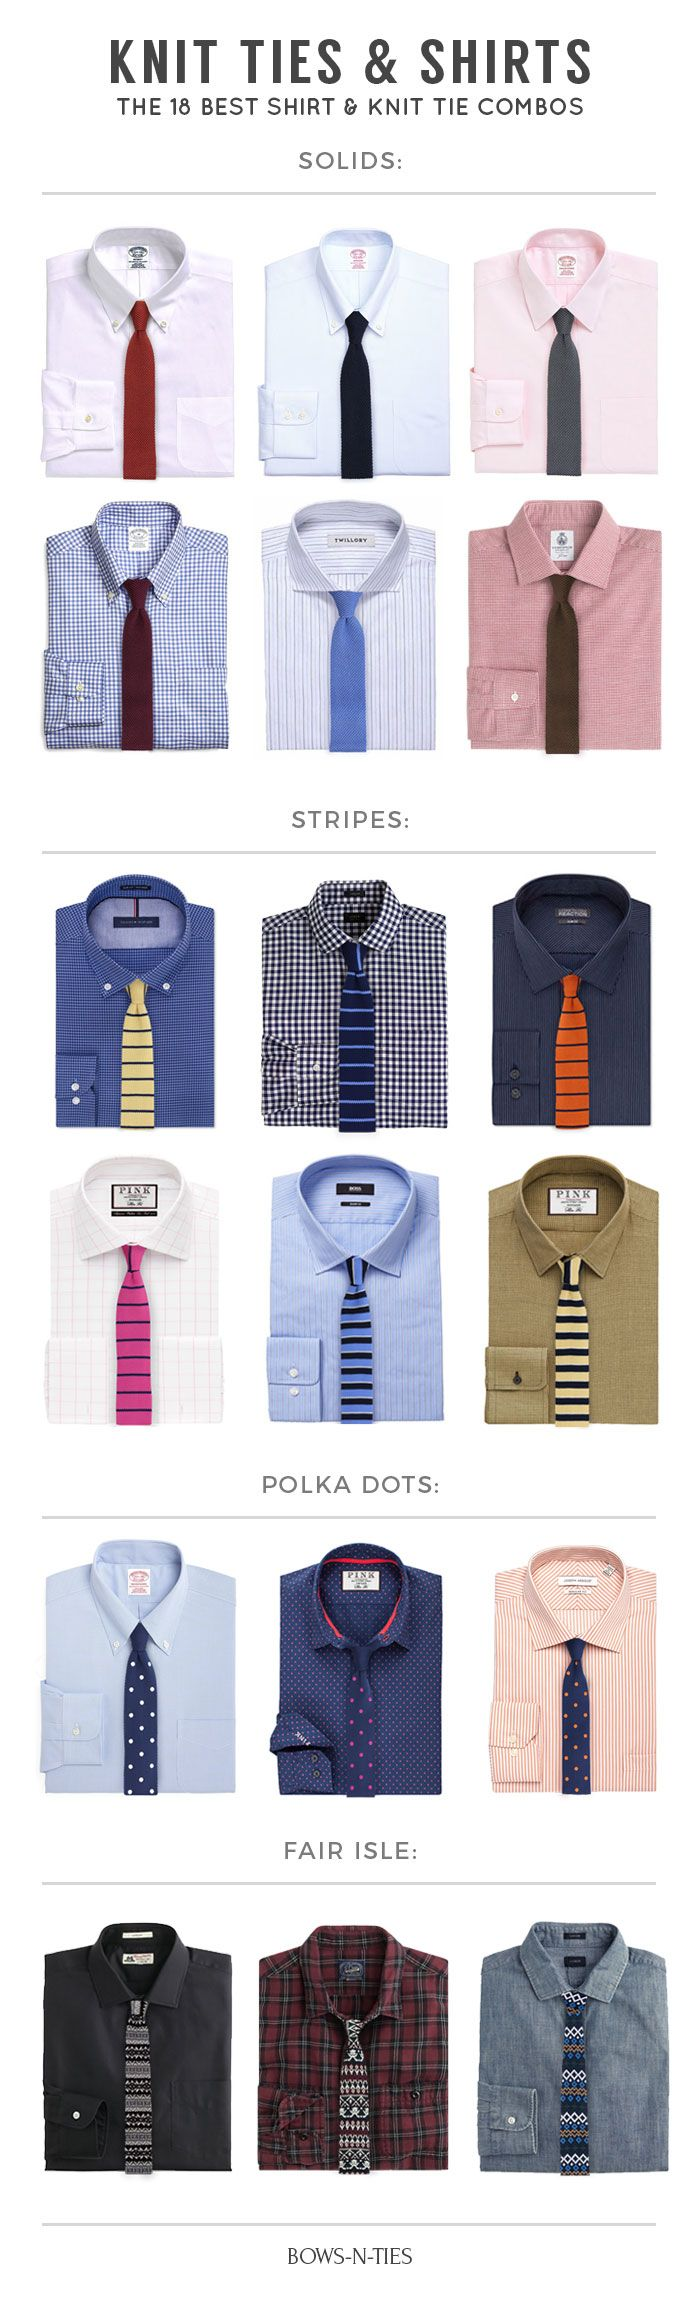 Mens style guide for the perfect tie and shirt combo.